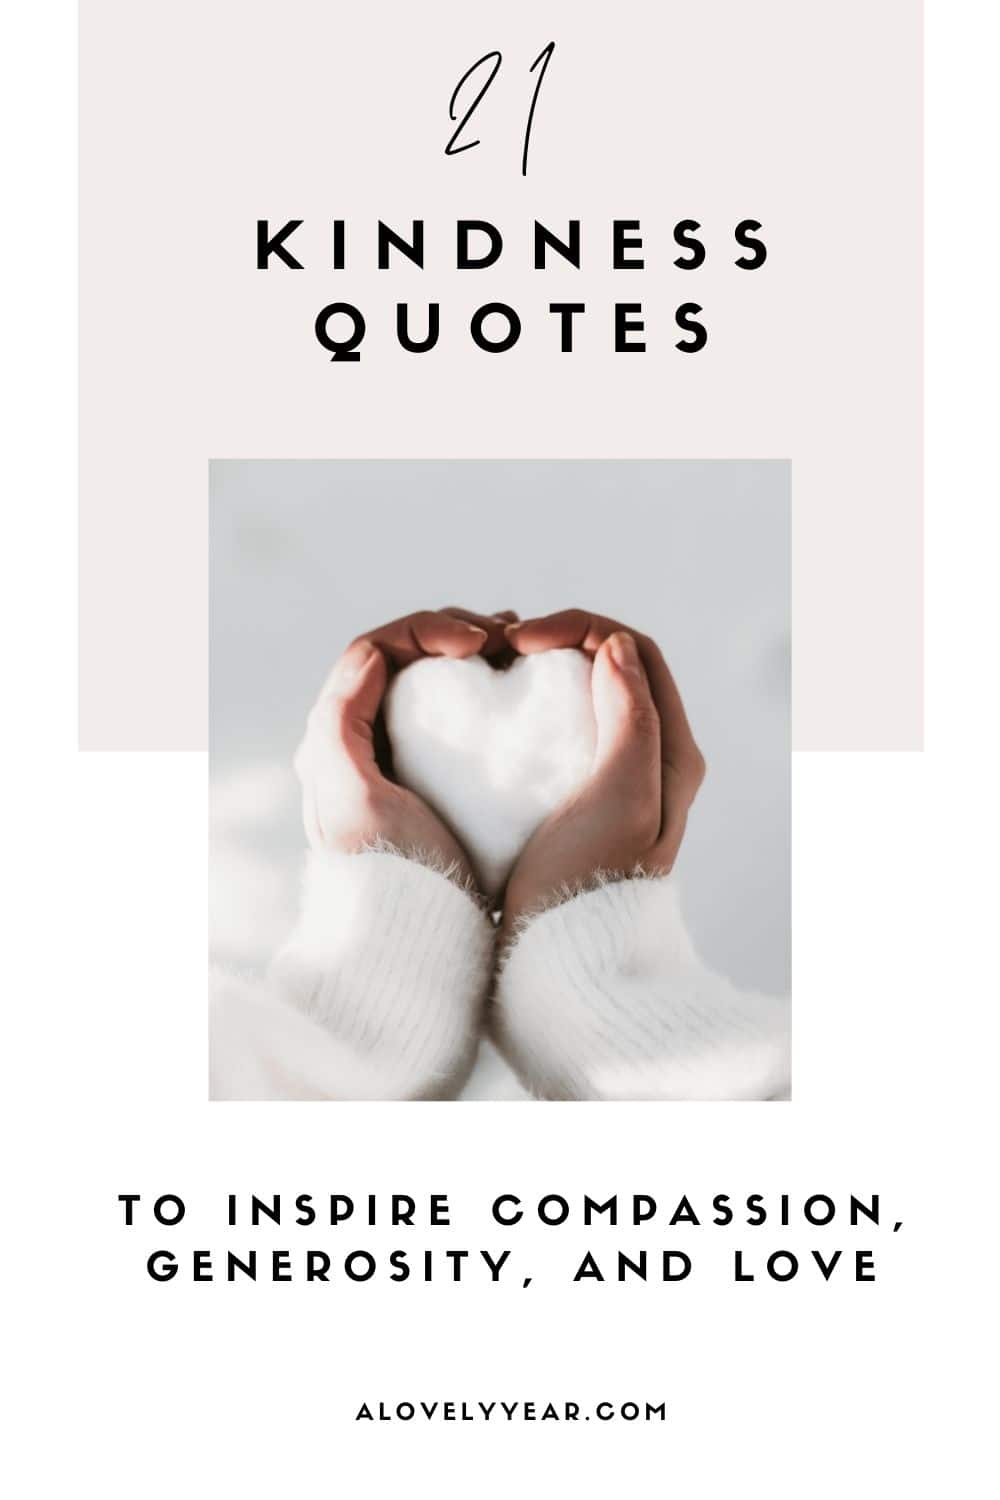 21 kindness quotes